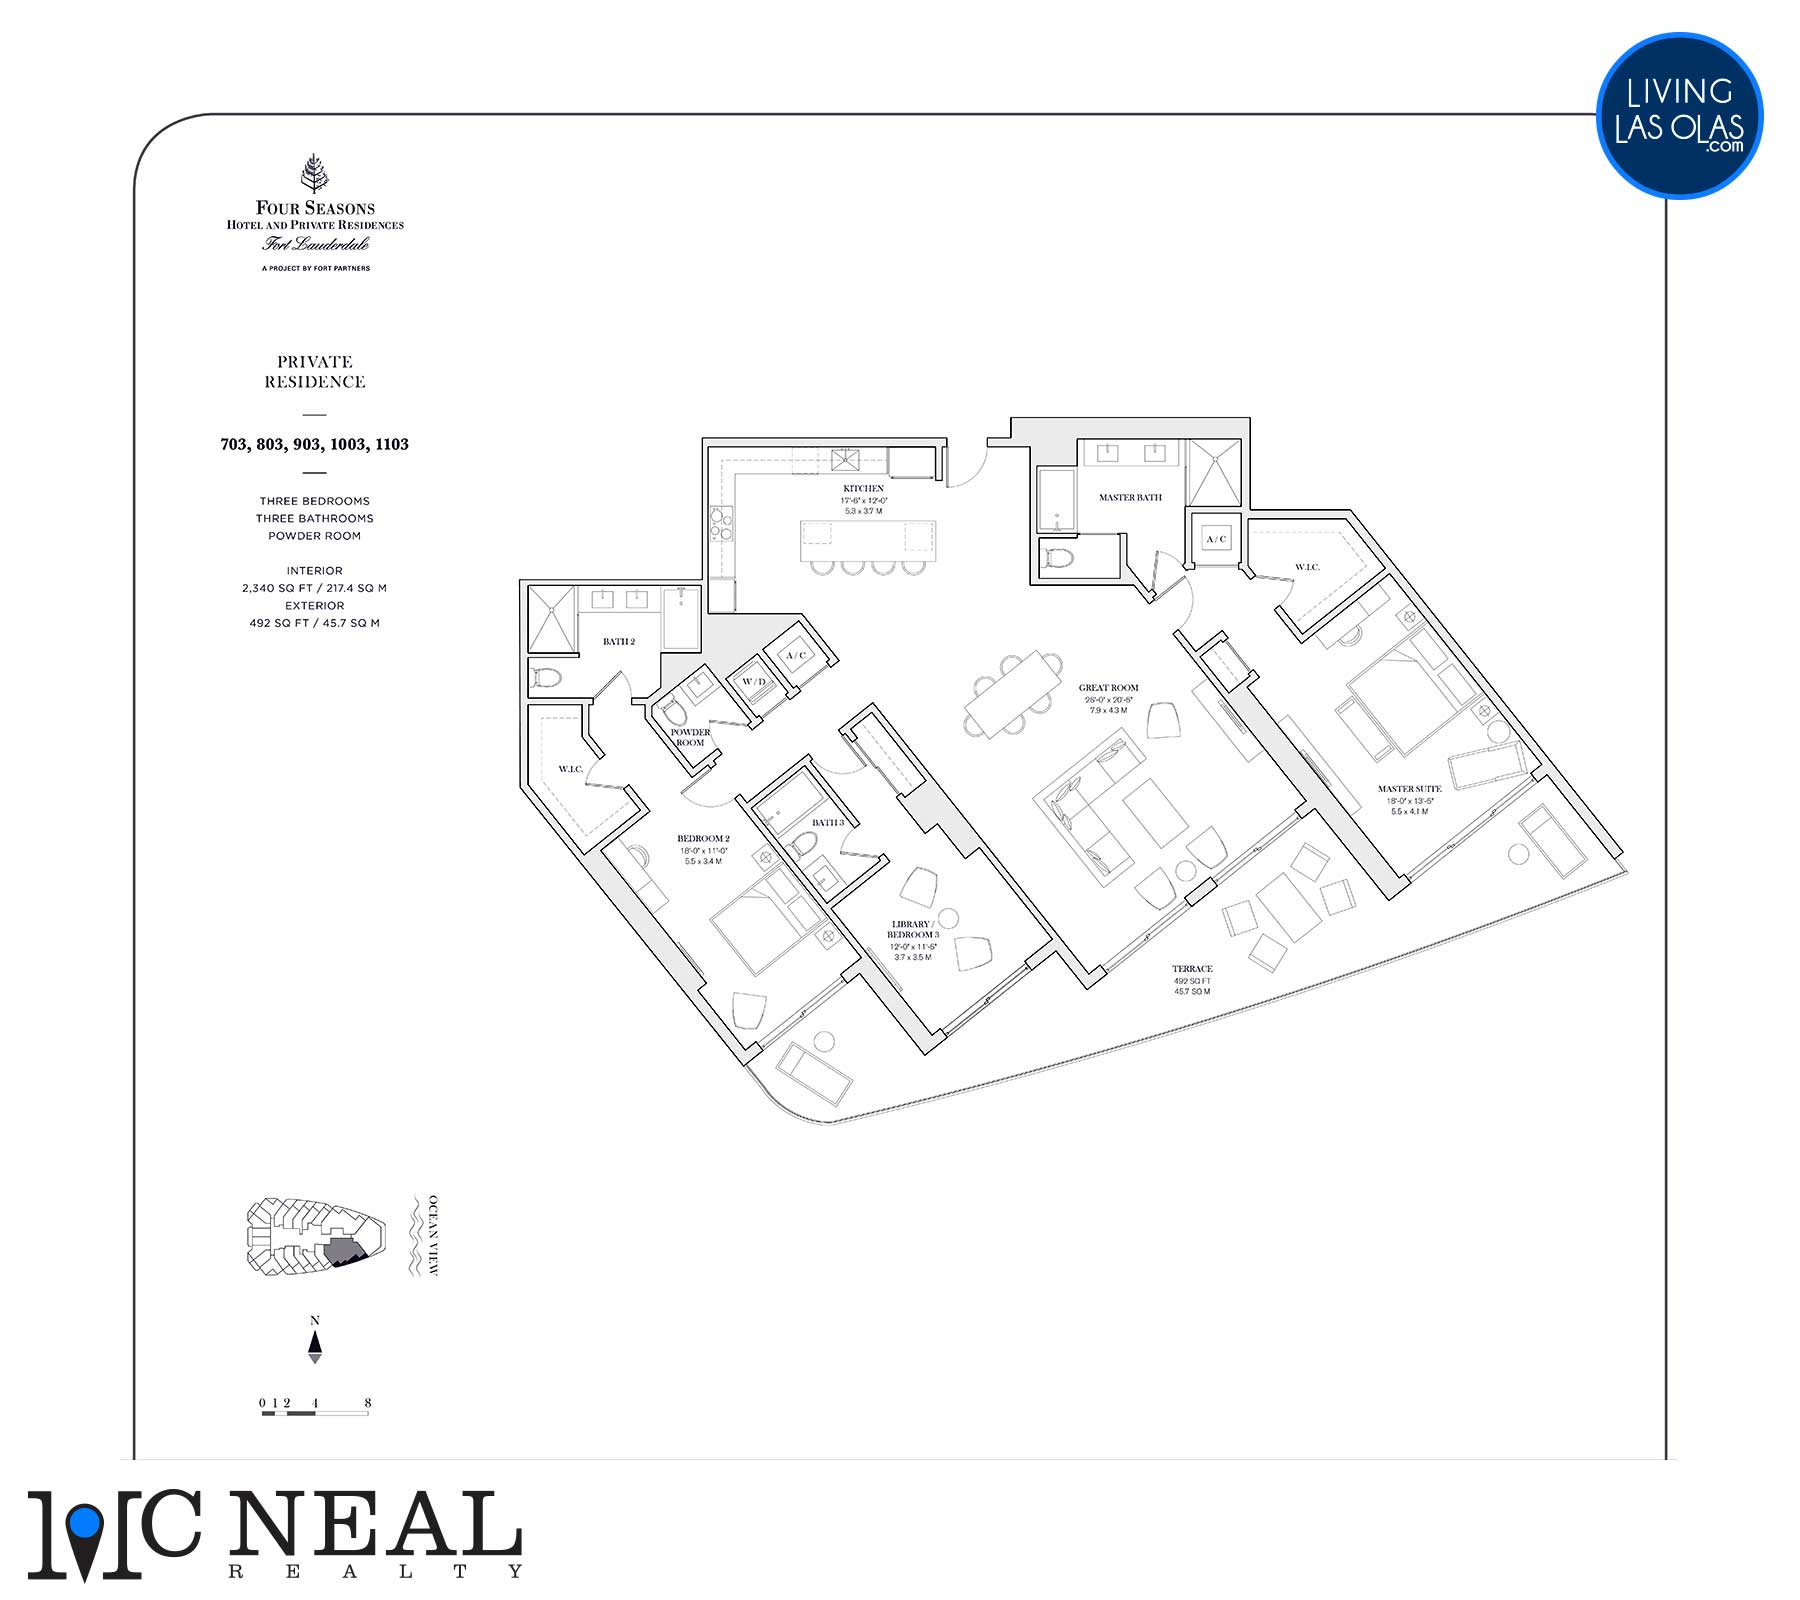 Four Seasons Private Residences Floor Plan 703-1103